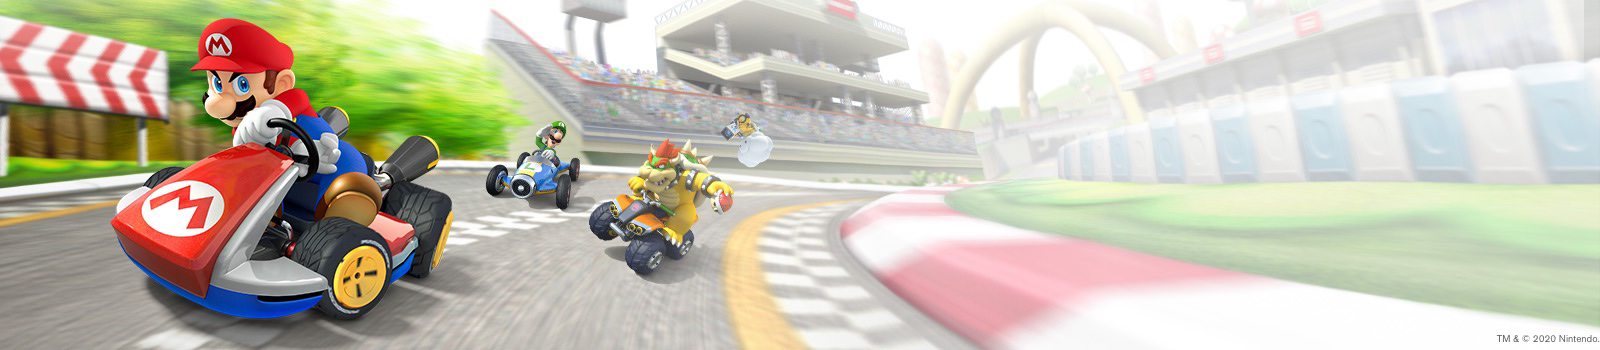 Row 1 Background Mario Kart